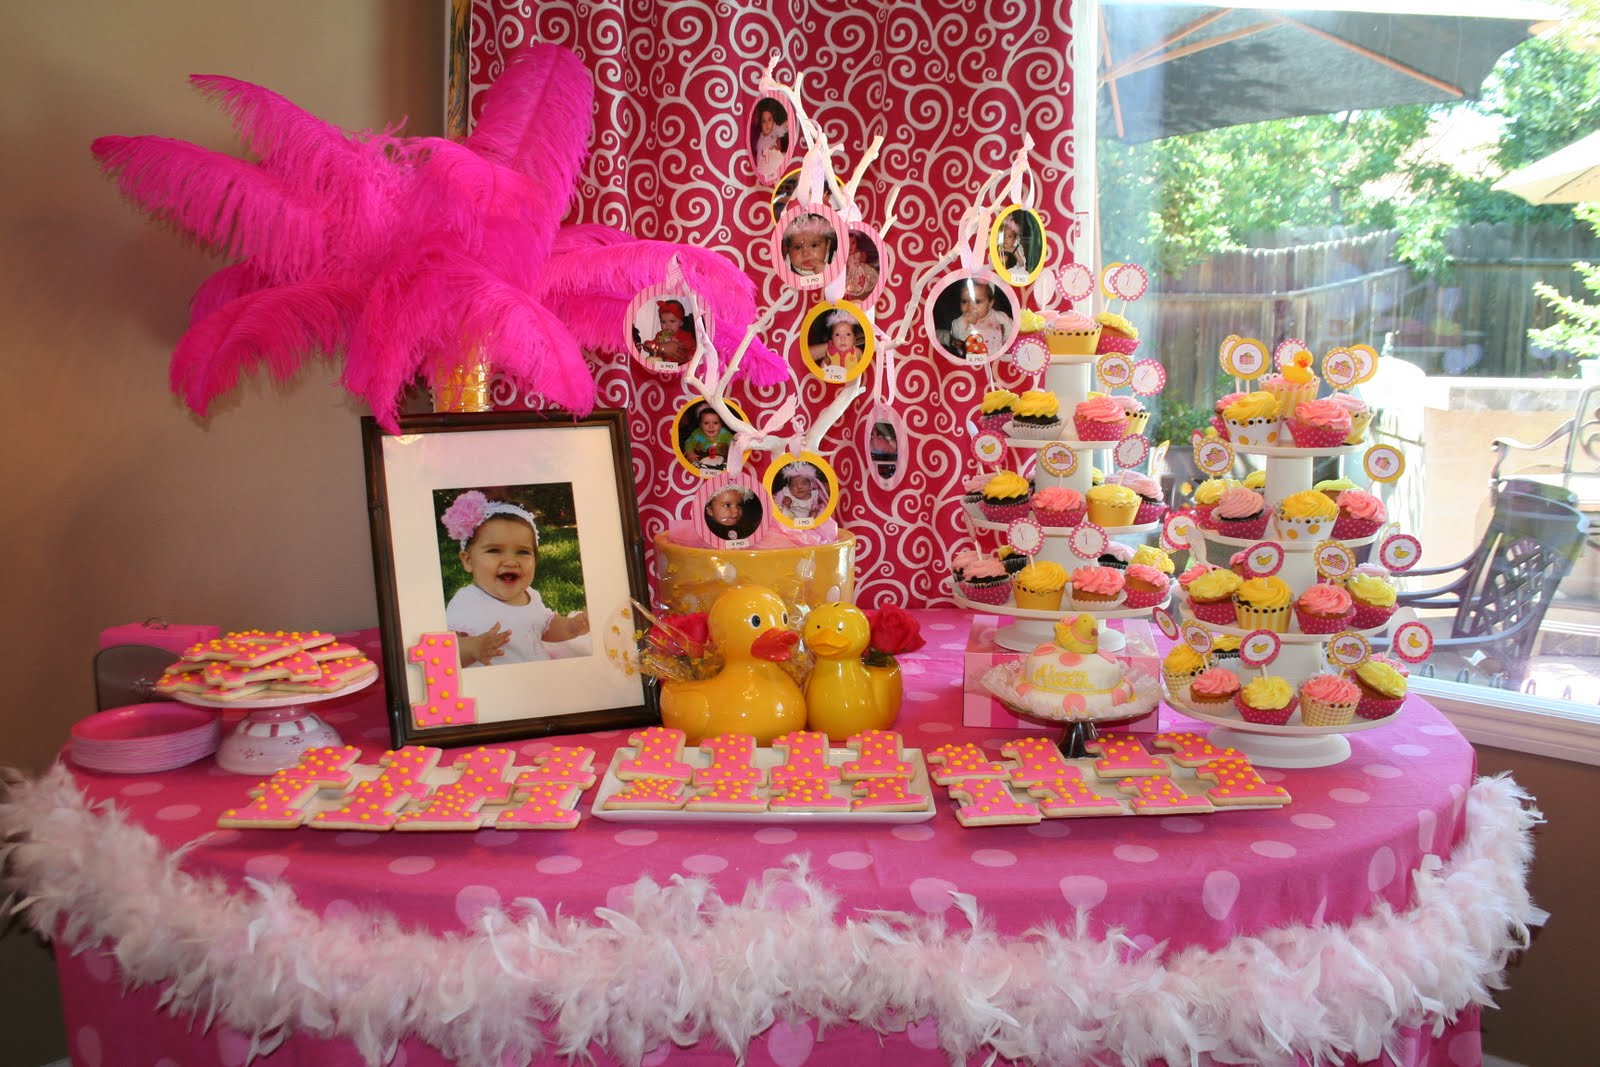 themed birthday party ideas for baby girl ; IMG_1716